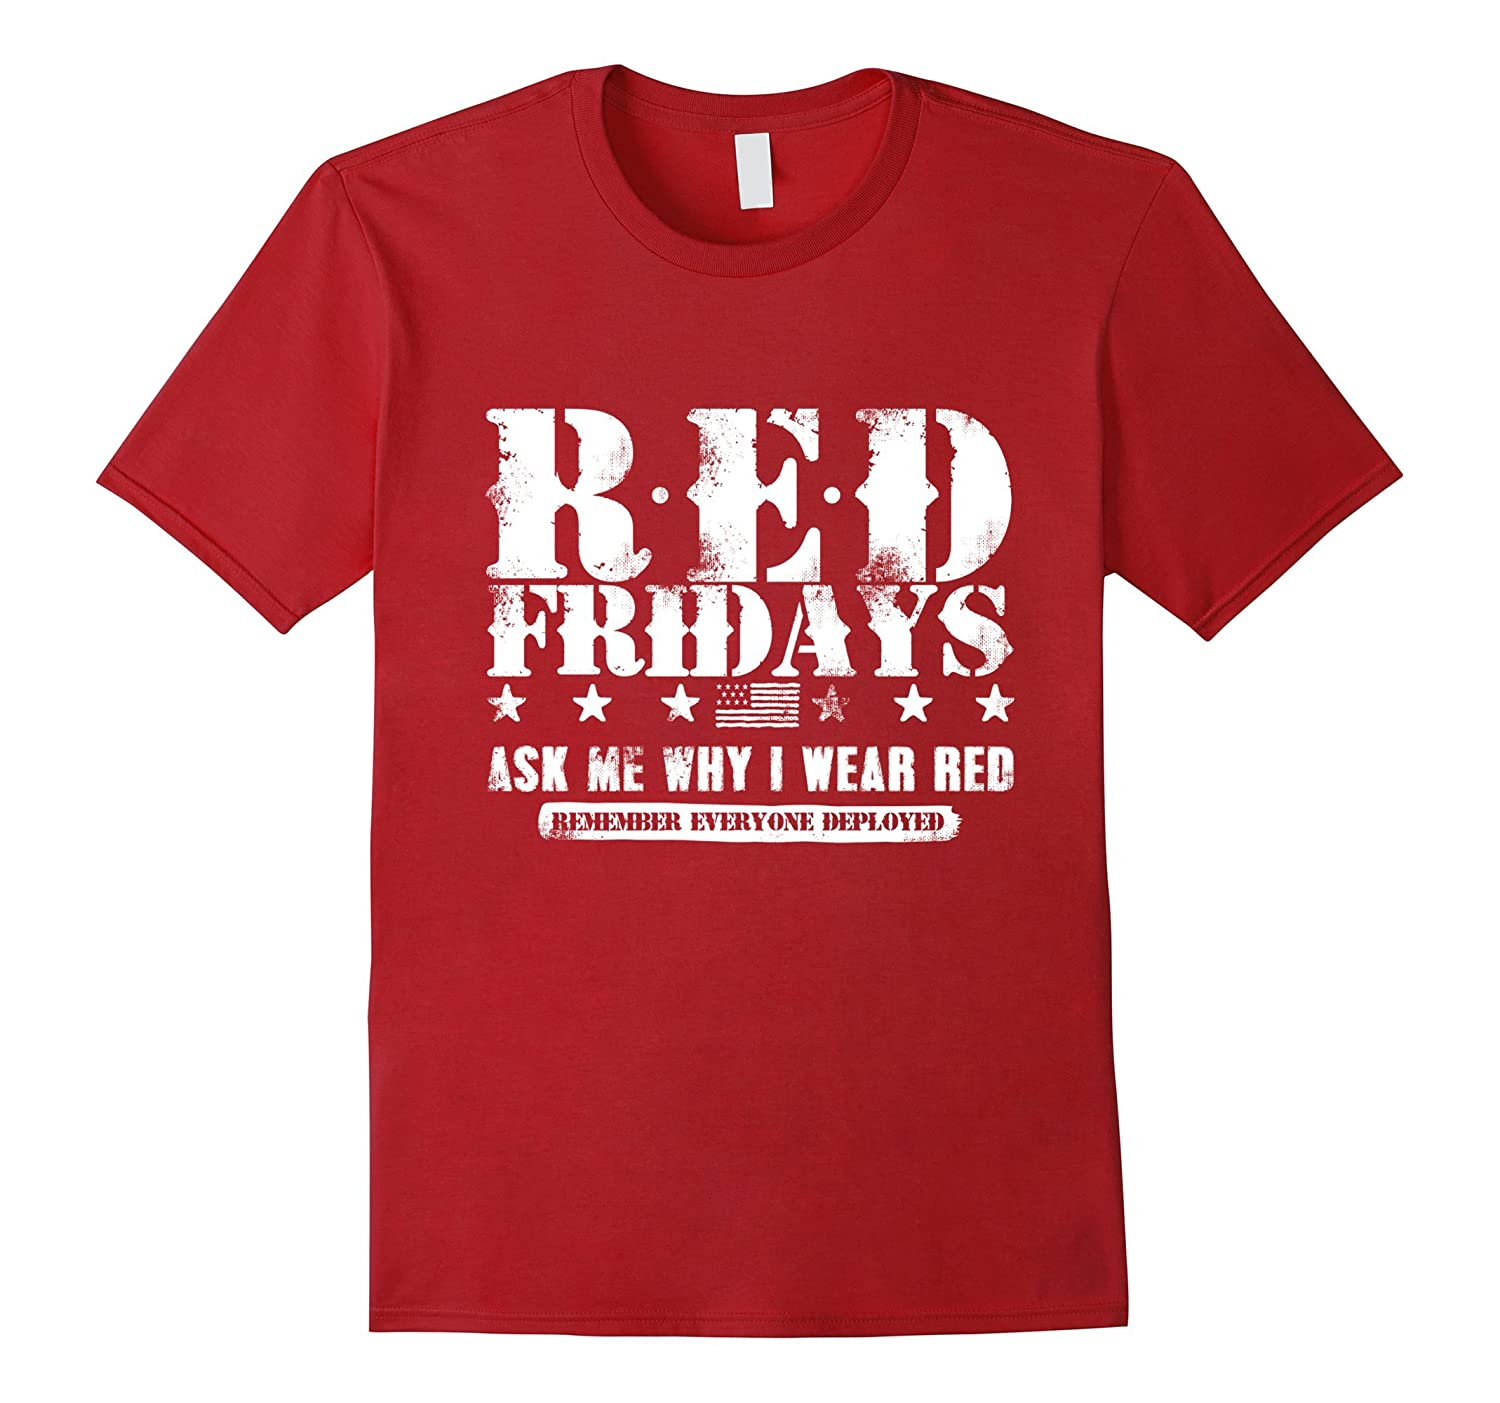 Military Support Red Shirt Fridays T-Shirt